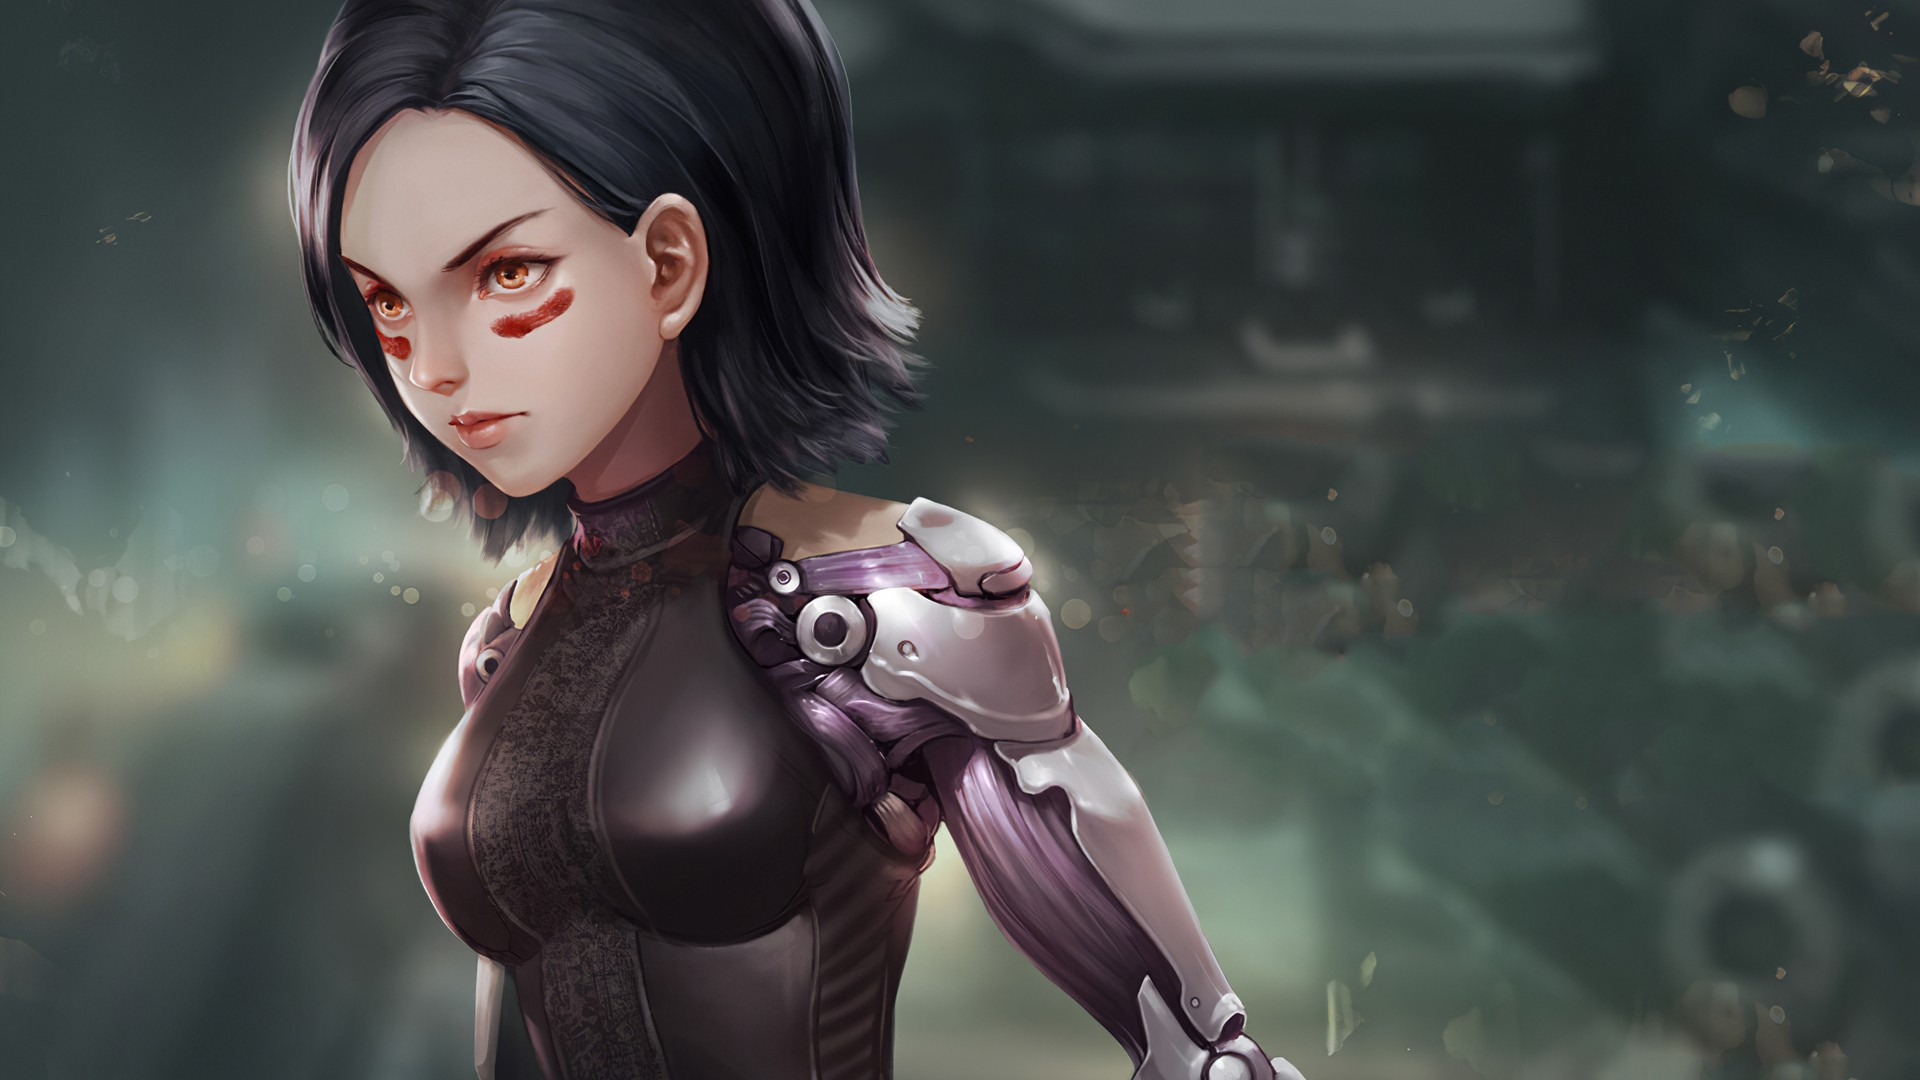 Alita Battle Angel wallpaper for desktop